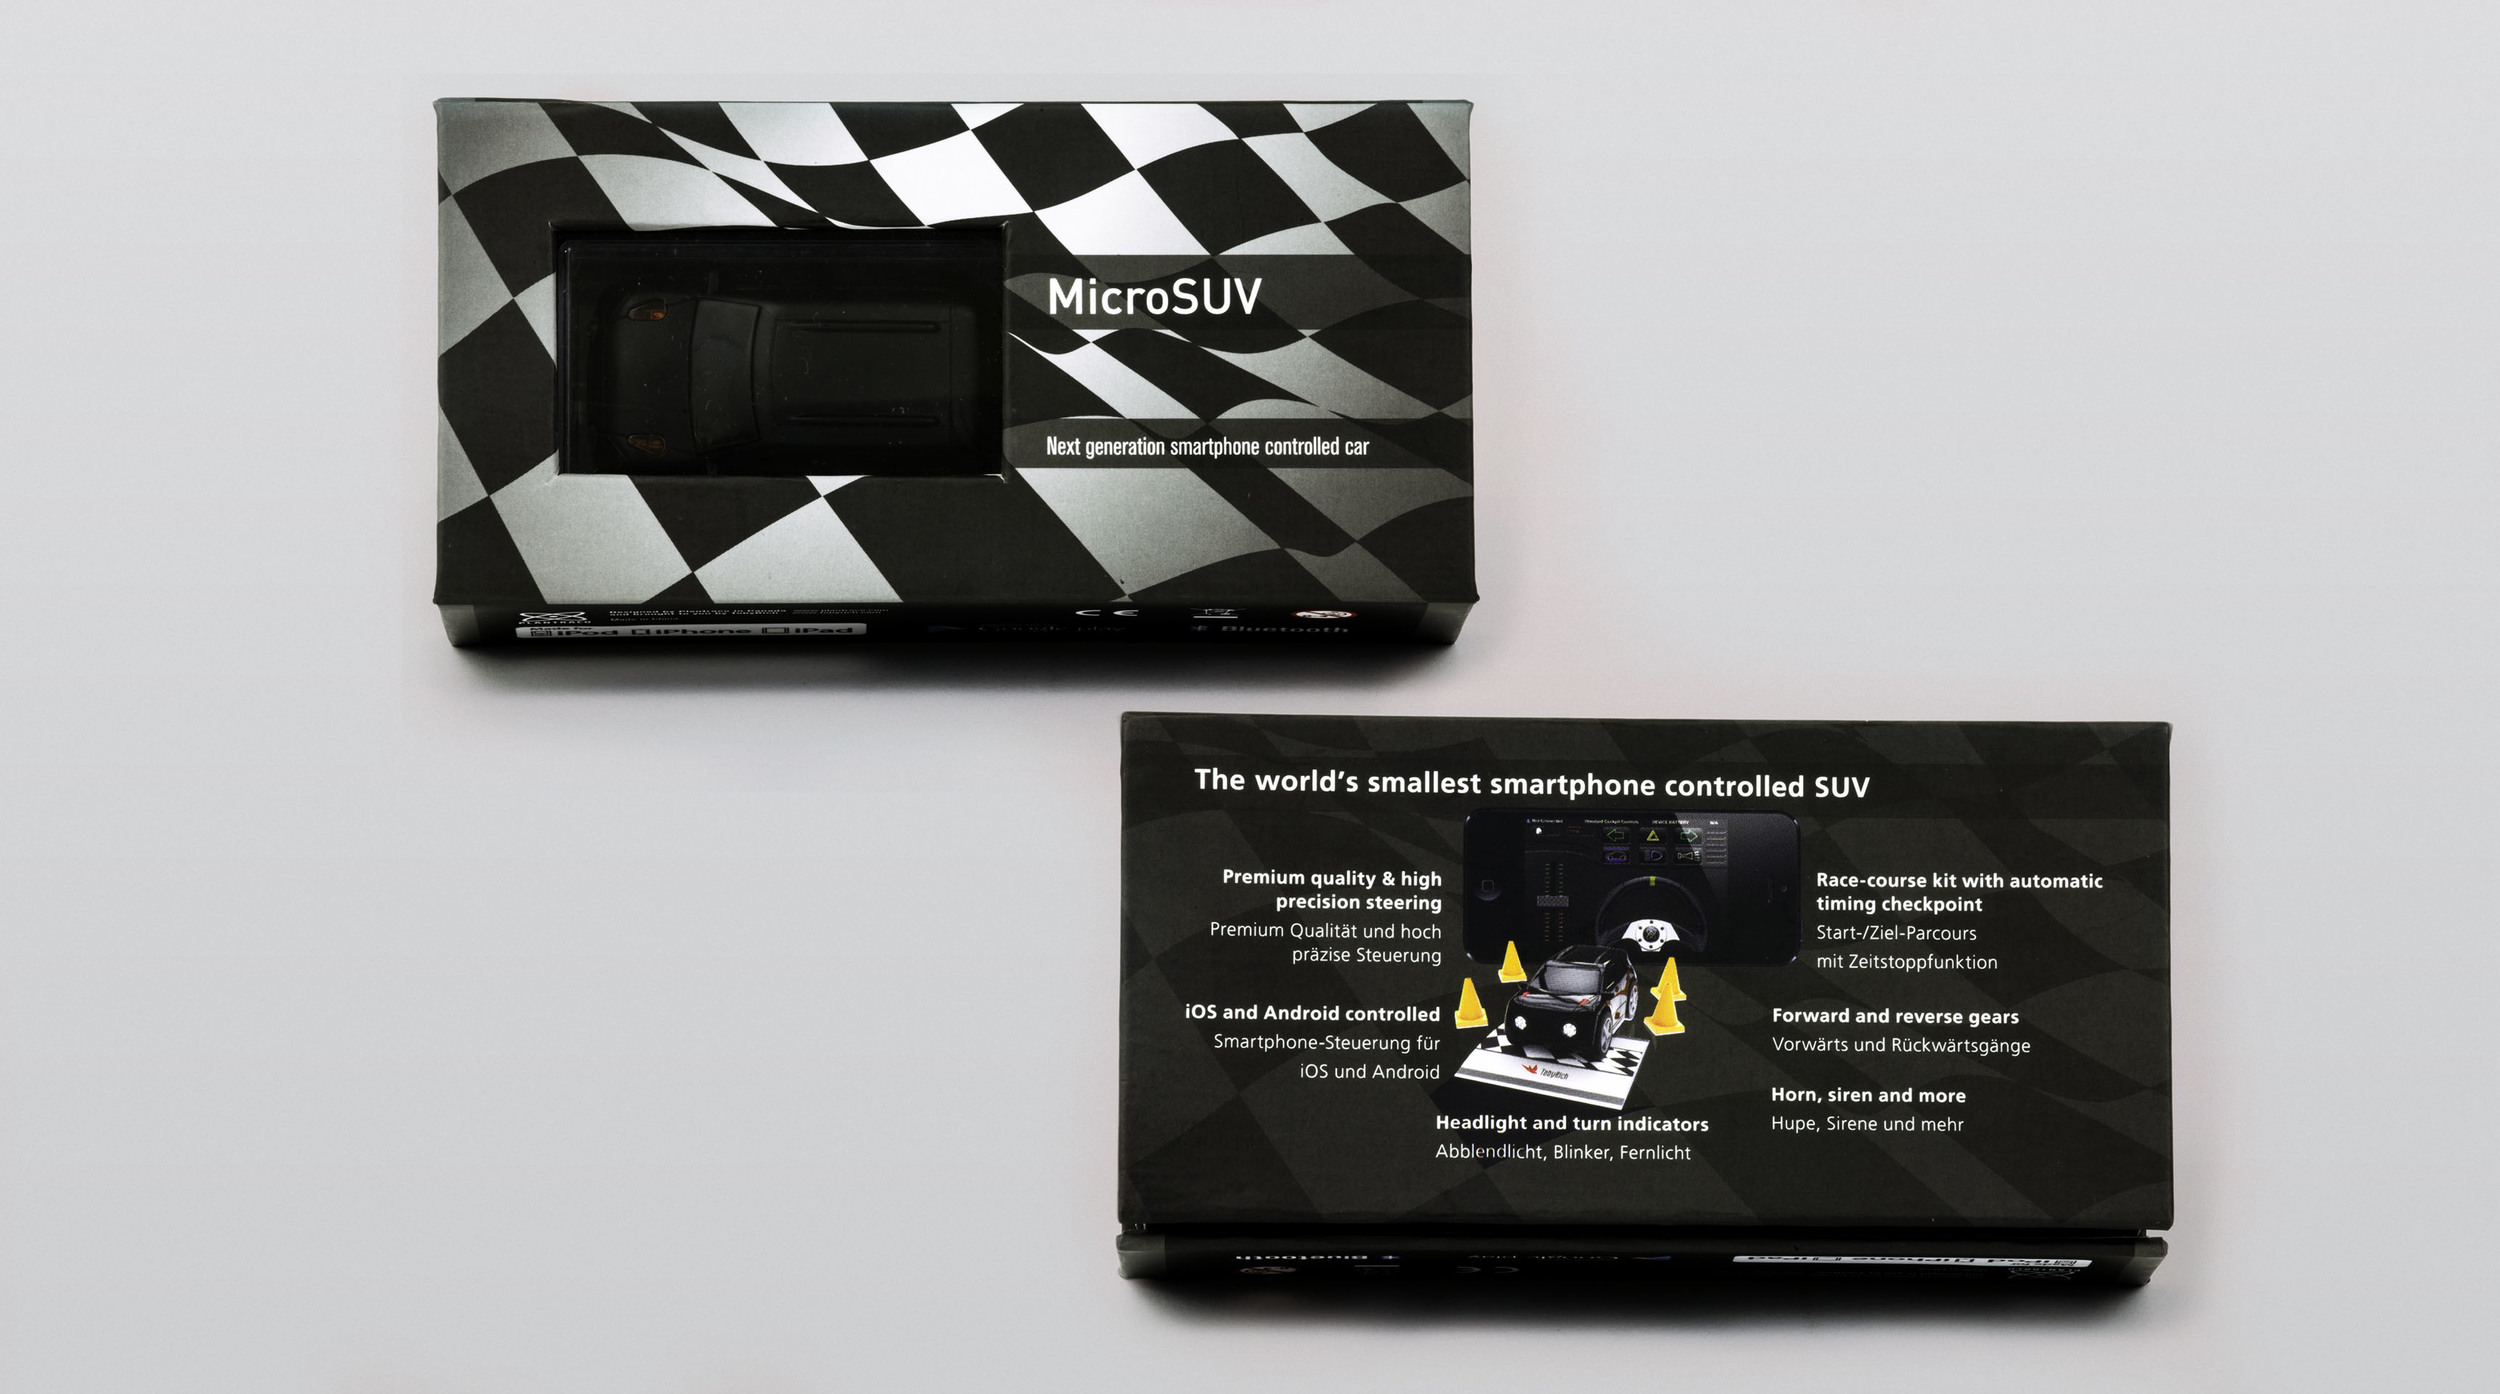 final version of the packaging design printed